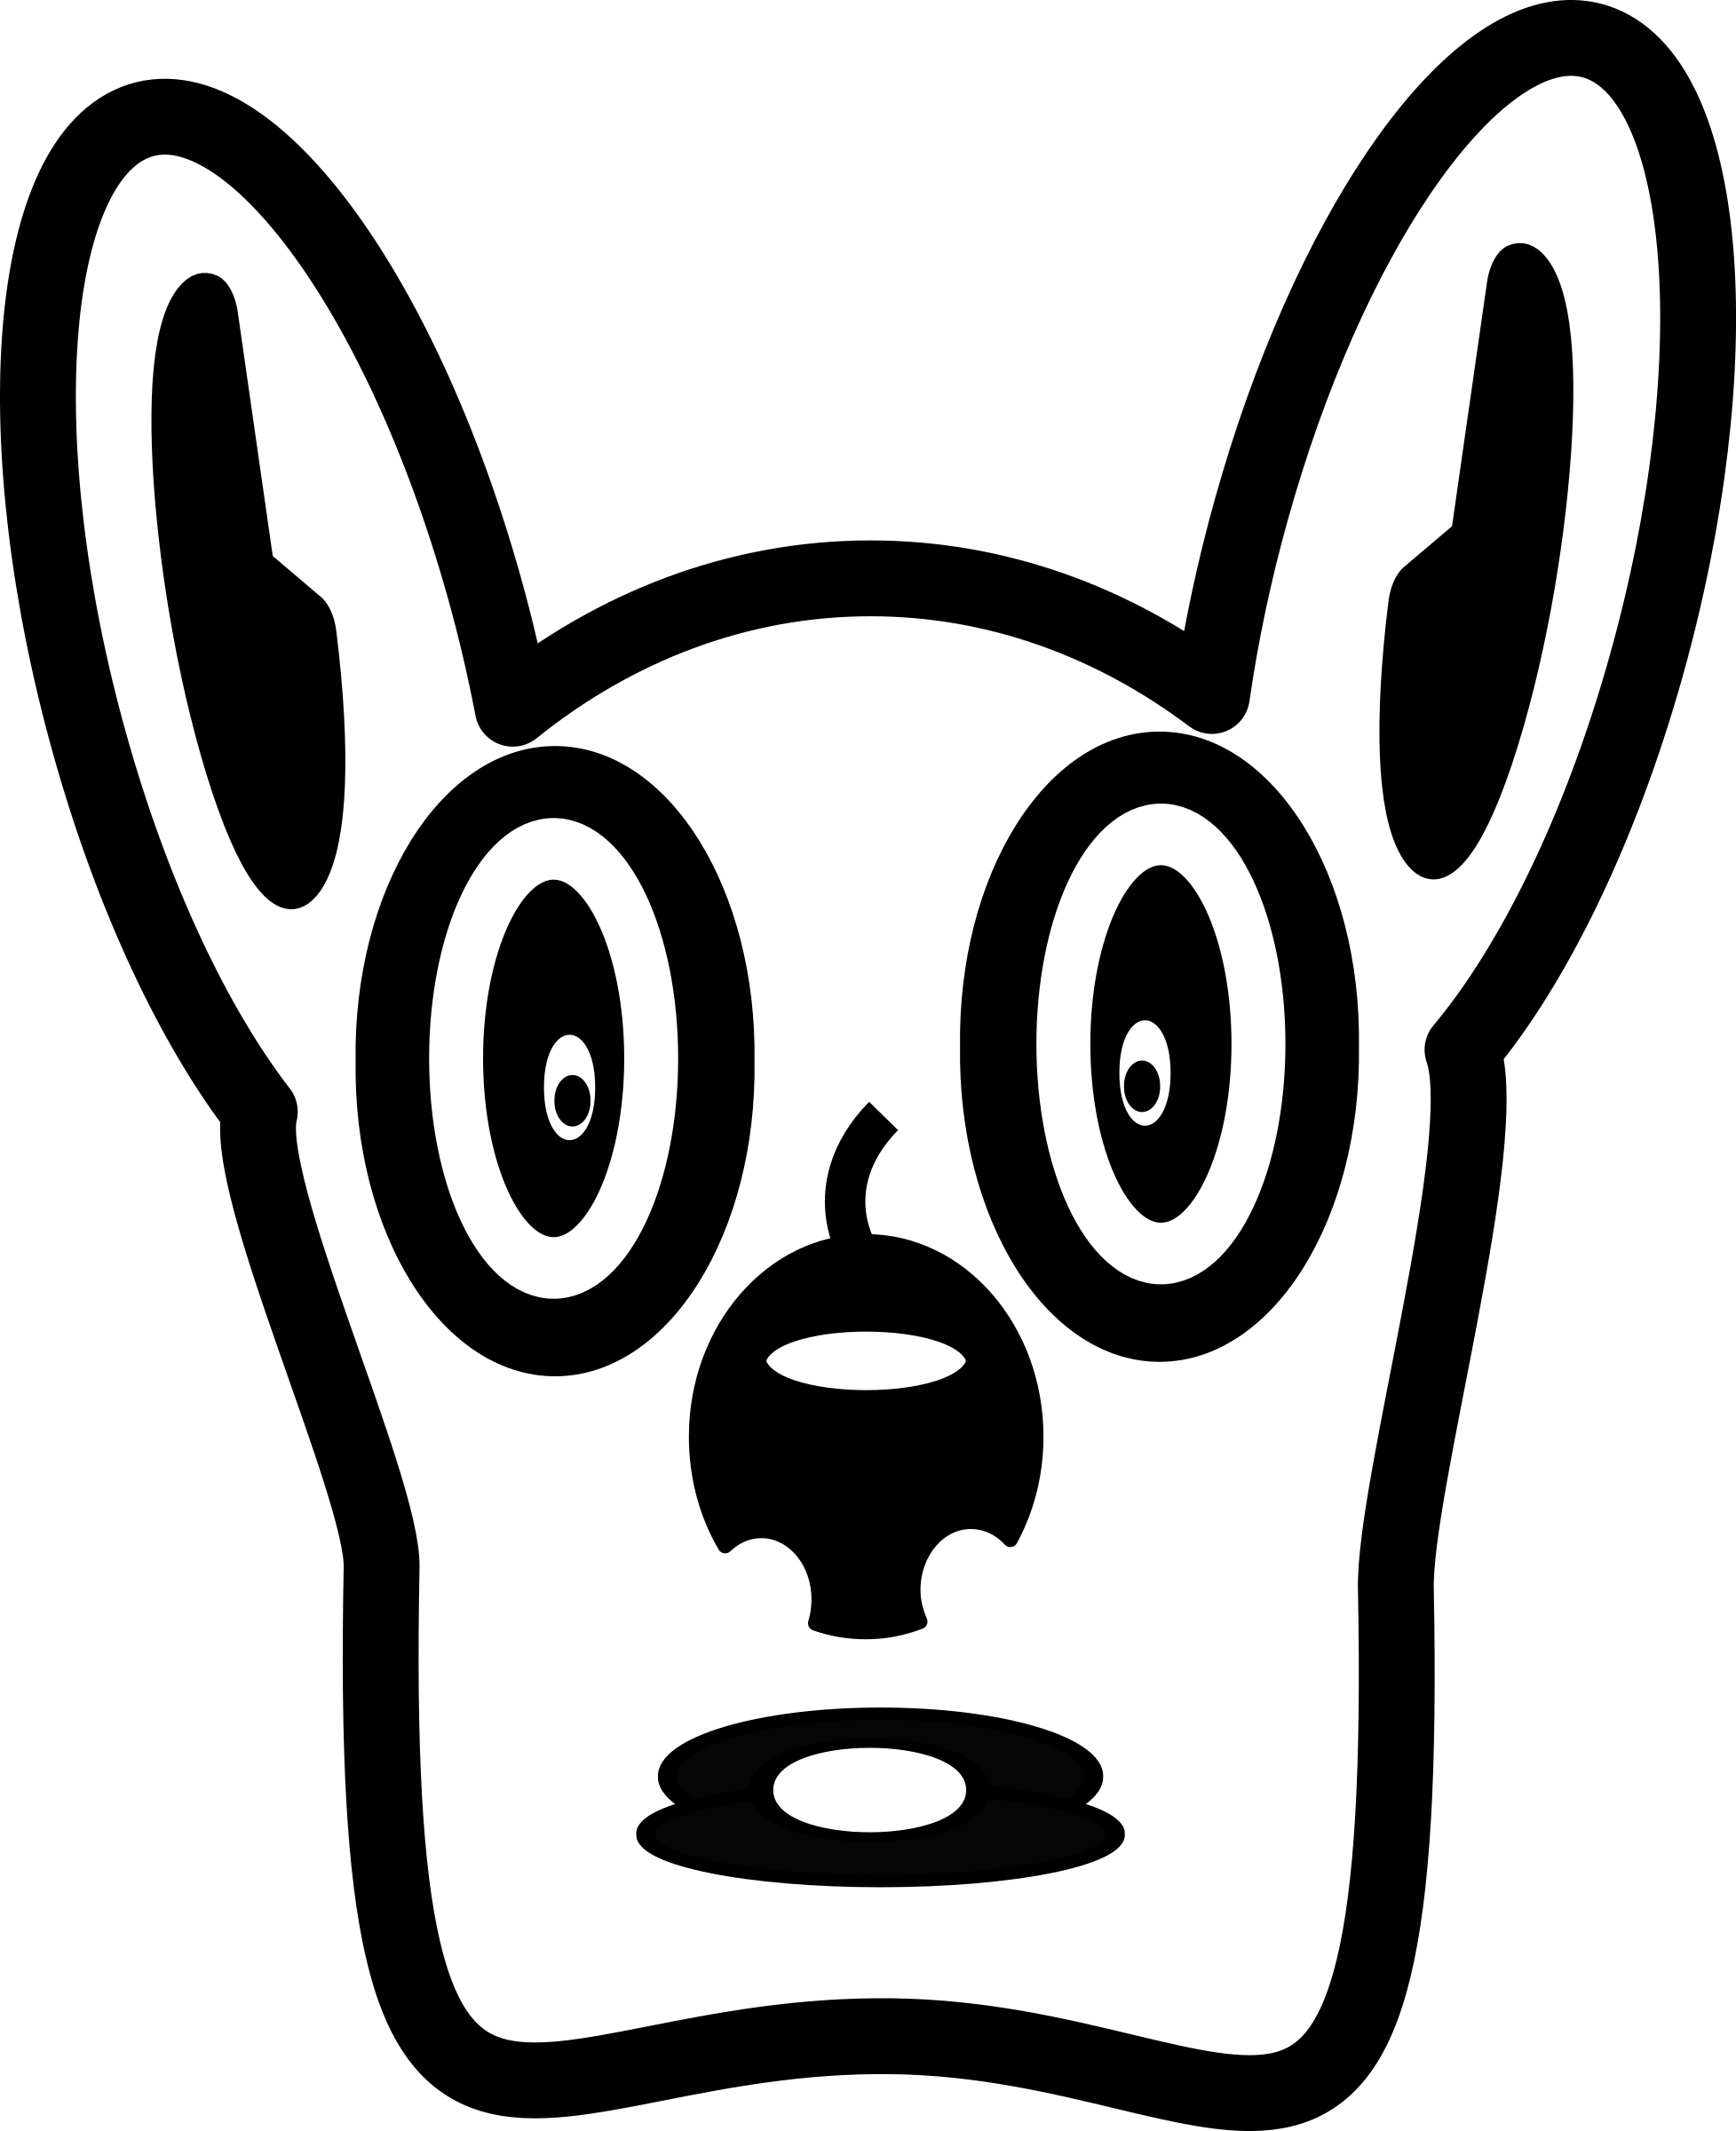 Clipart dog face jpg black and white library Clipart - Cartoon Dog Face jpg black and white library